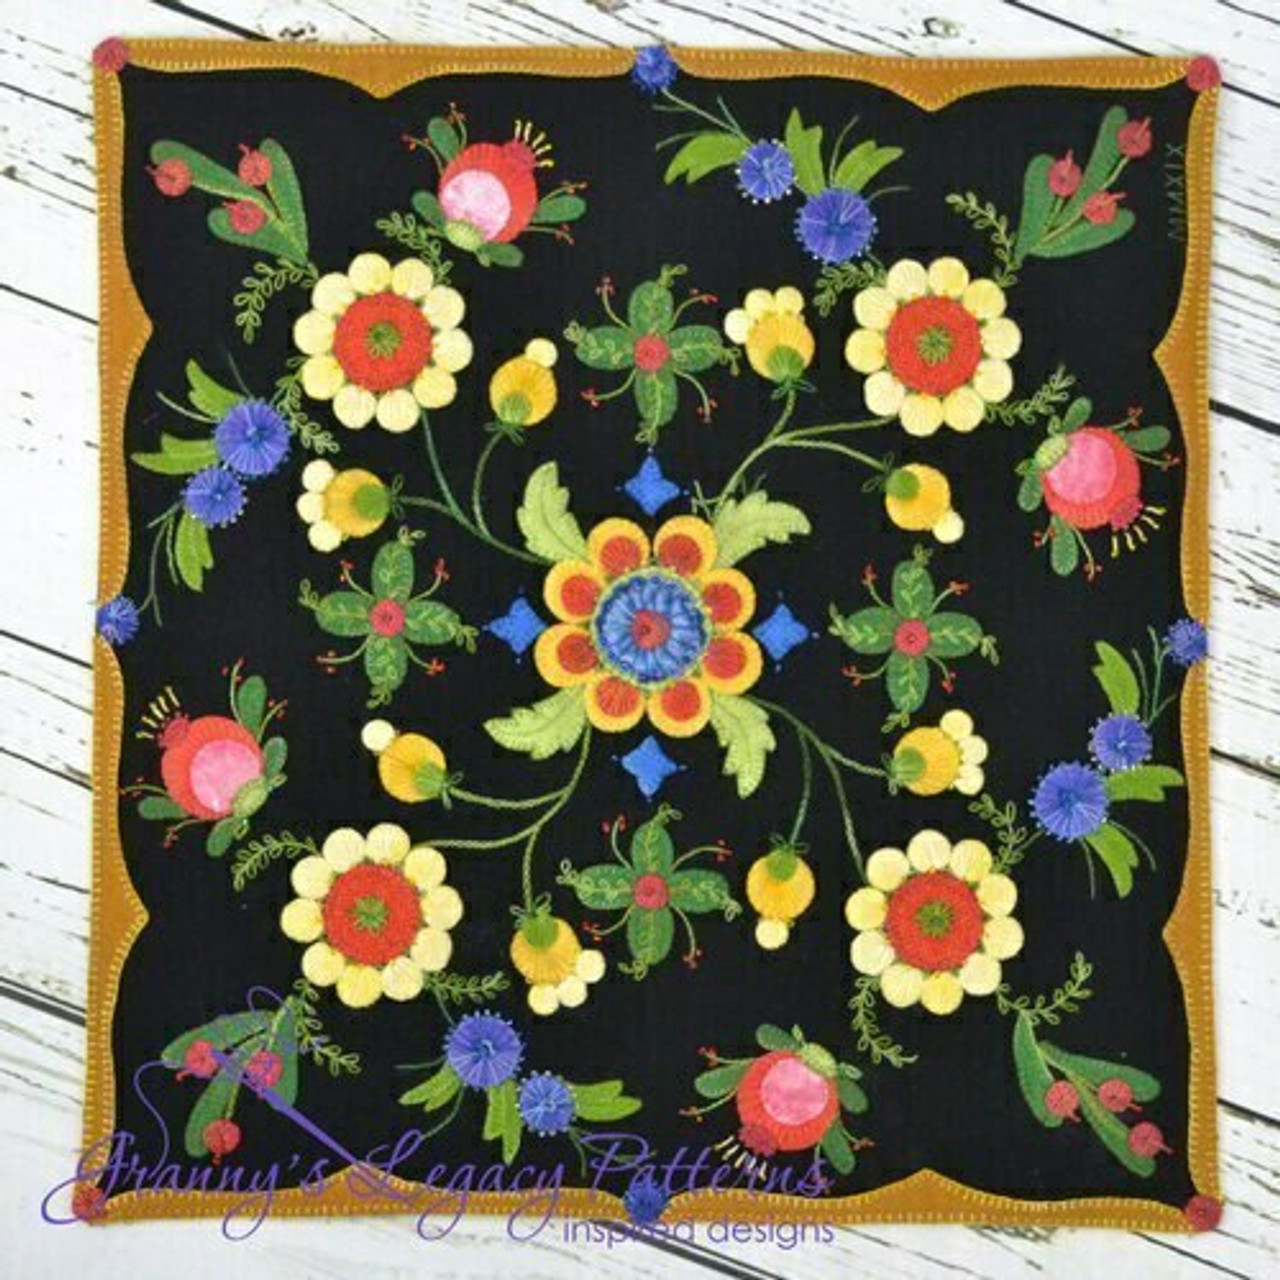 Granny's Legacy : Rosemary's Garden Pattern and Beads